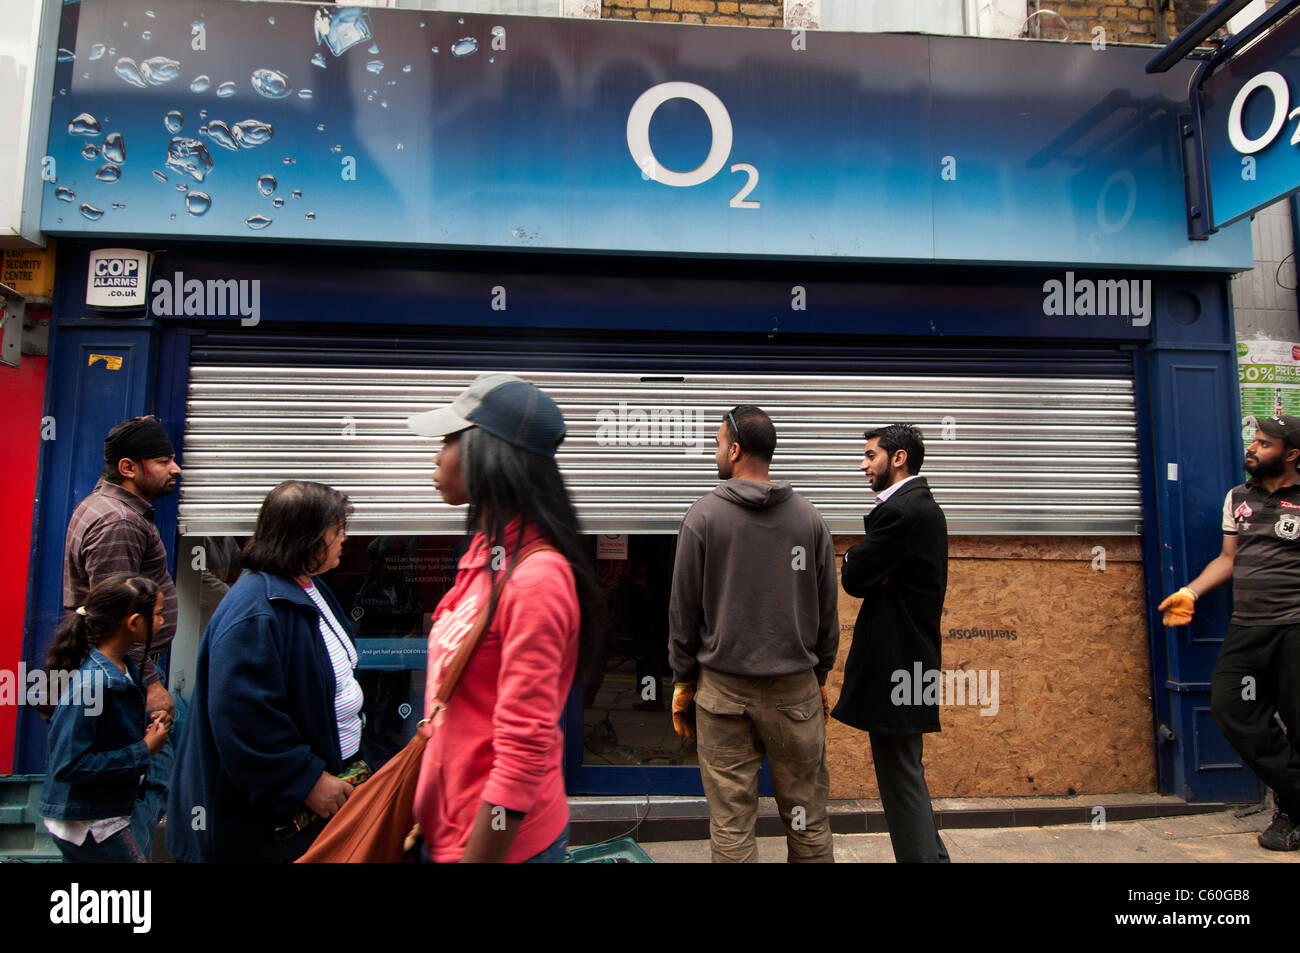 Hackney . The Narrow Way. O2 mobile phone shop attacked last night. Passers by in front of damaged window. - Stock Image